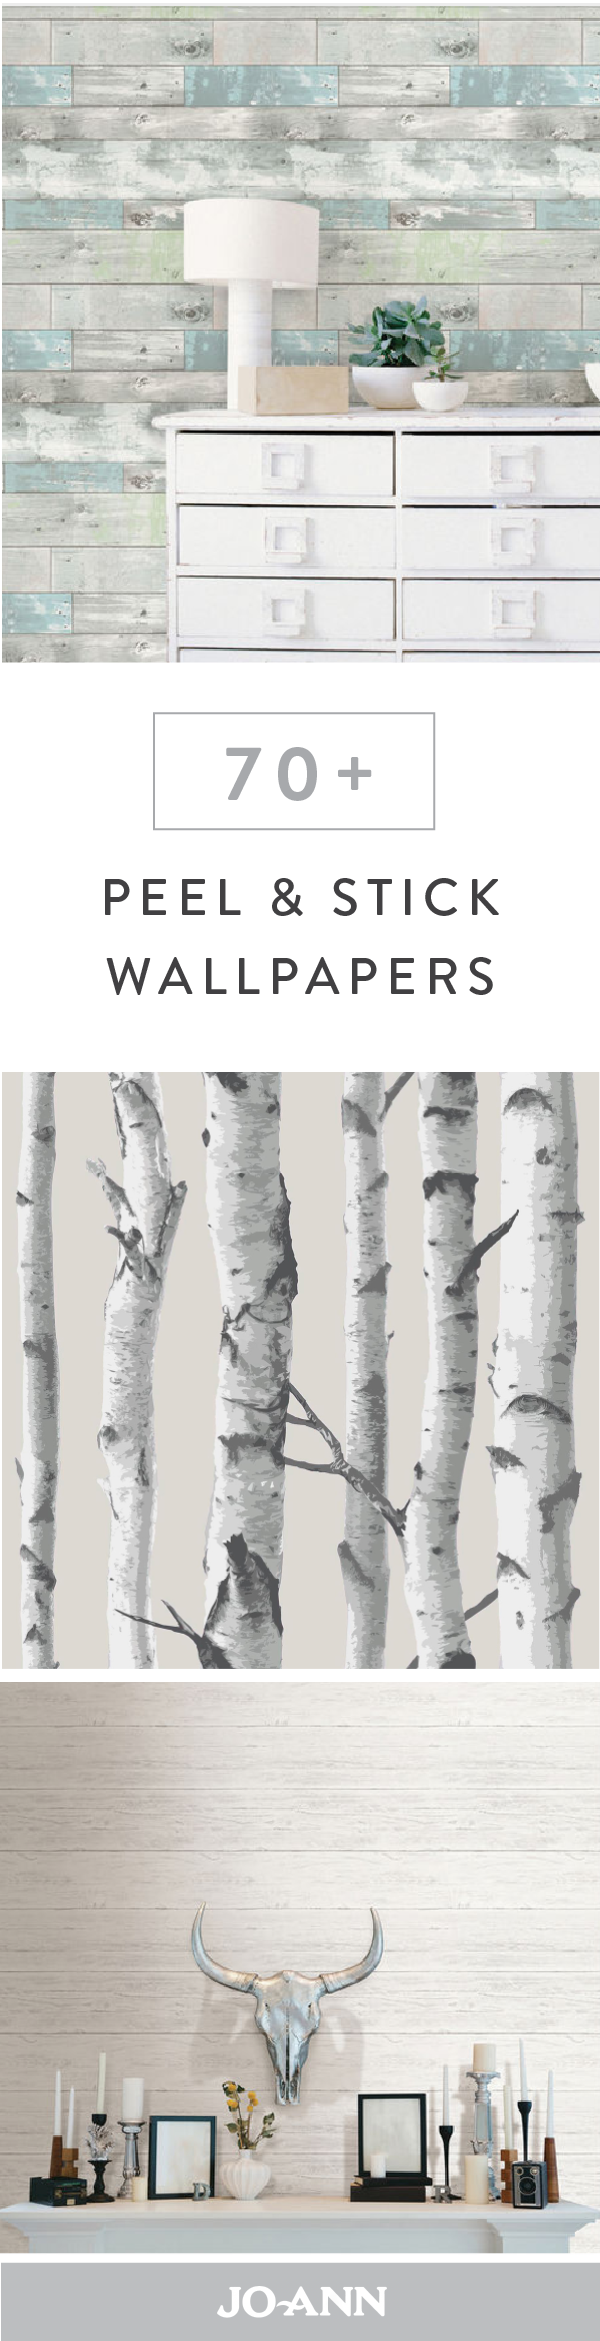 Say hello to the new face of wall decor this collection of peel